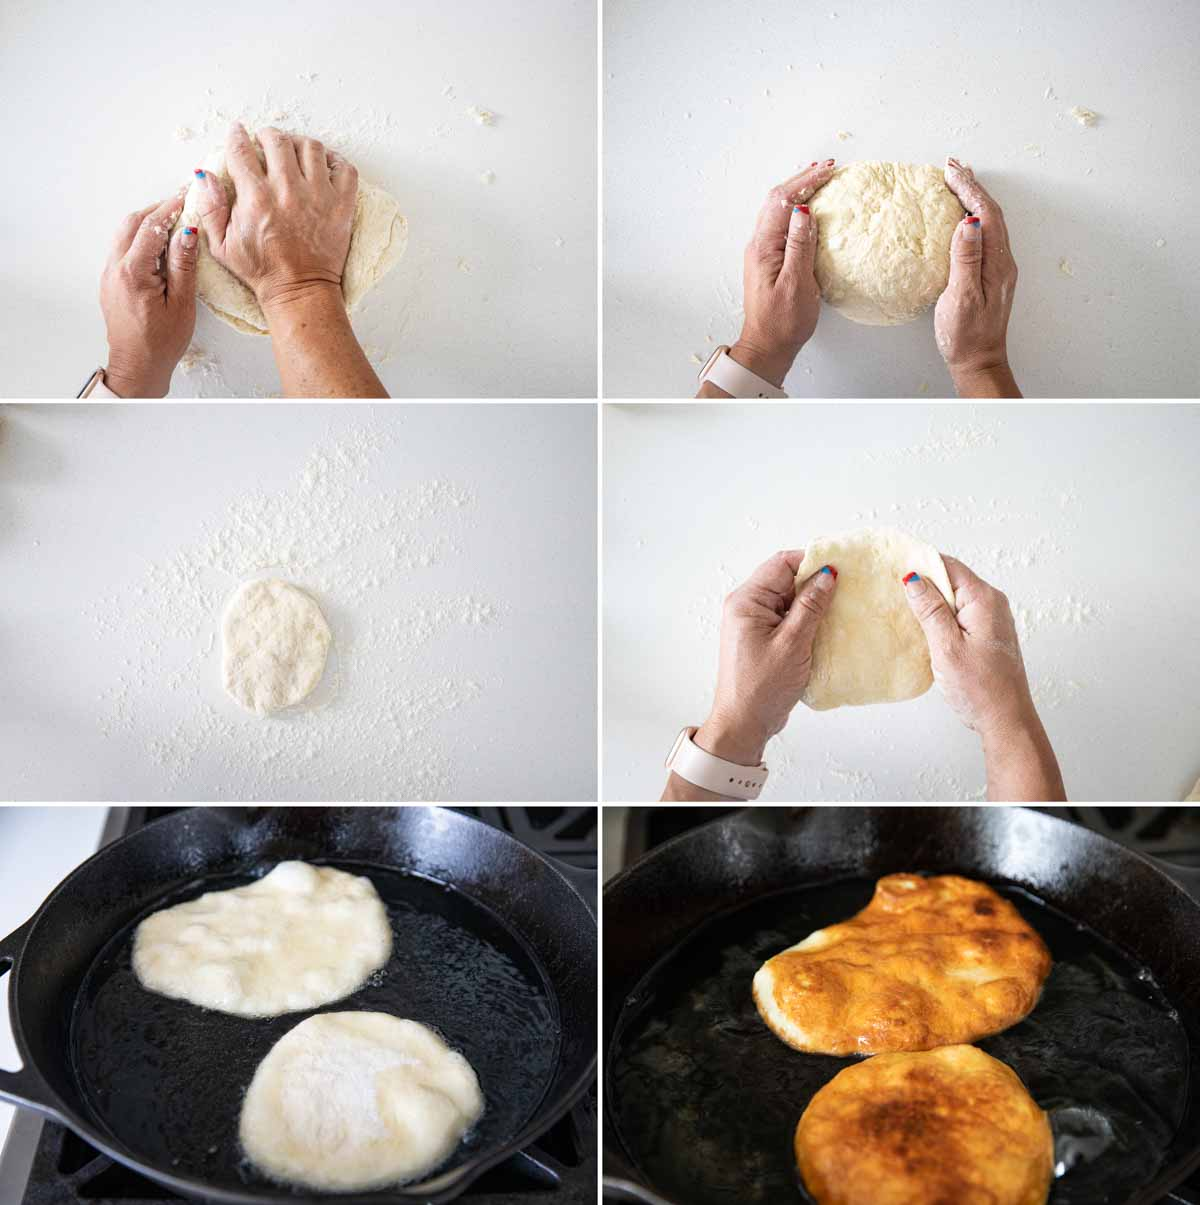 kneading and flattening dough to make fry bread